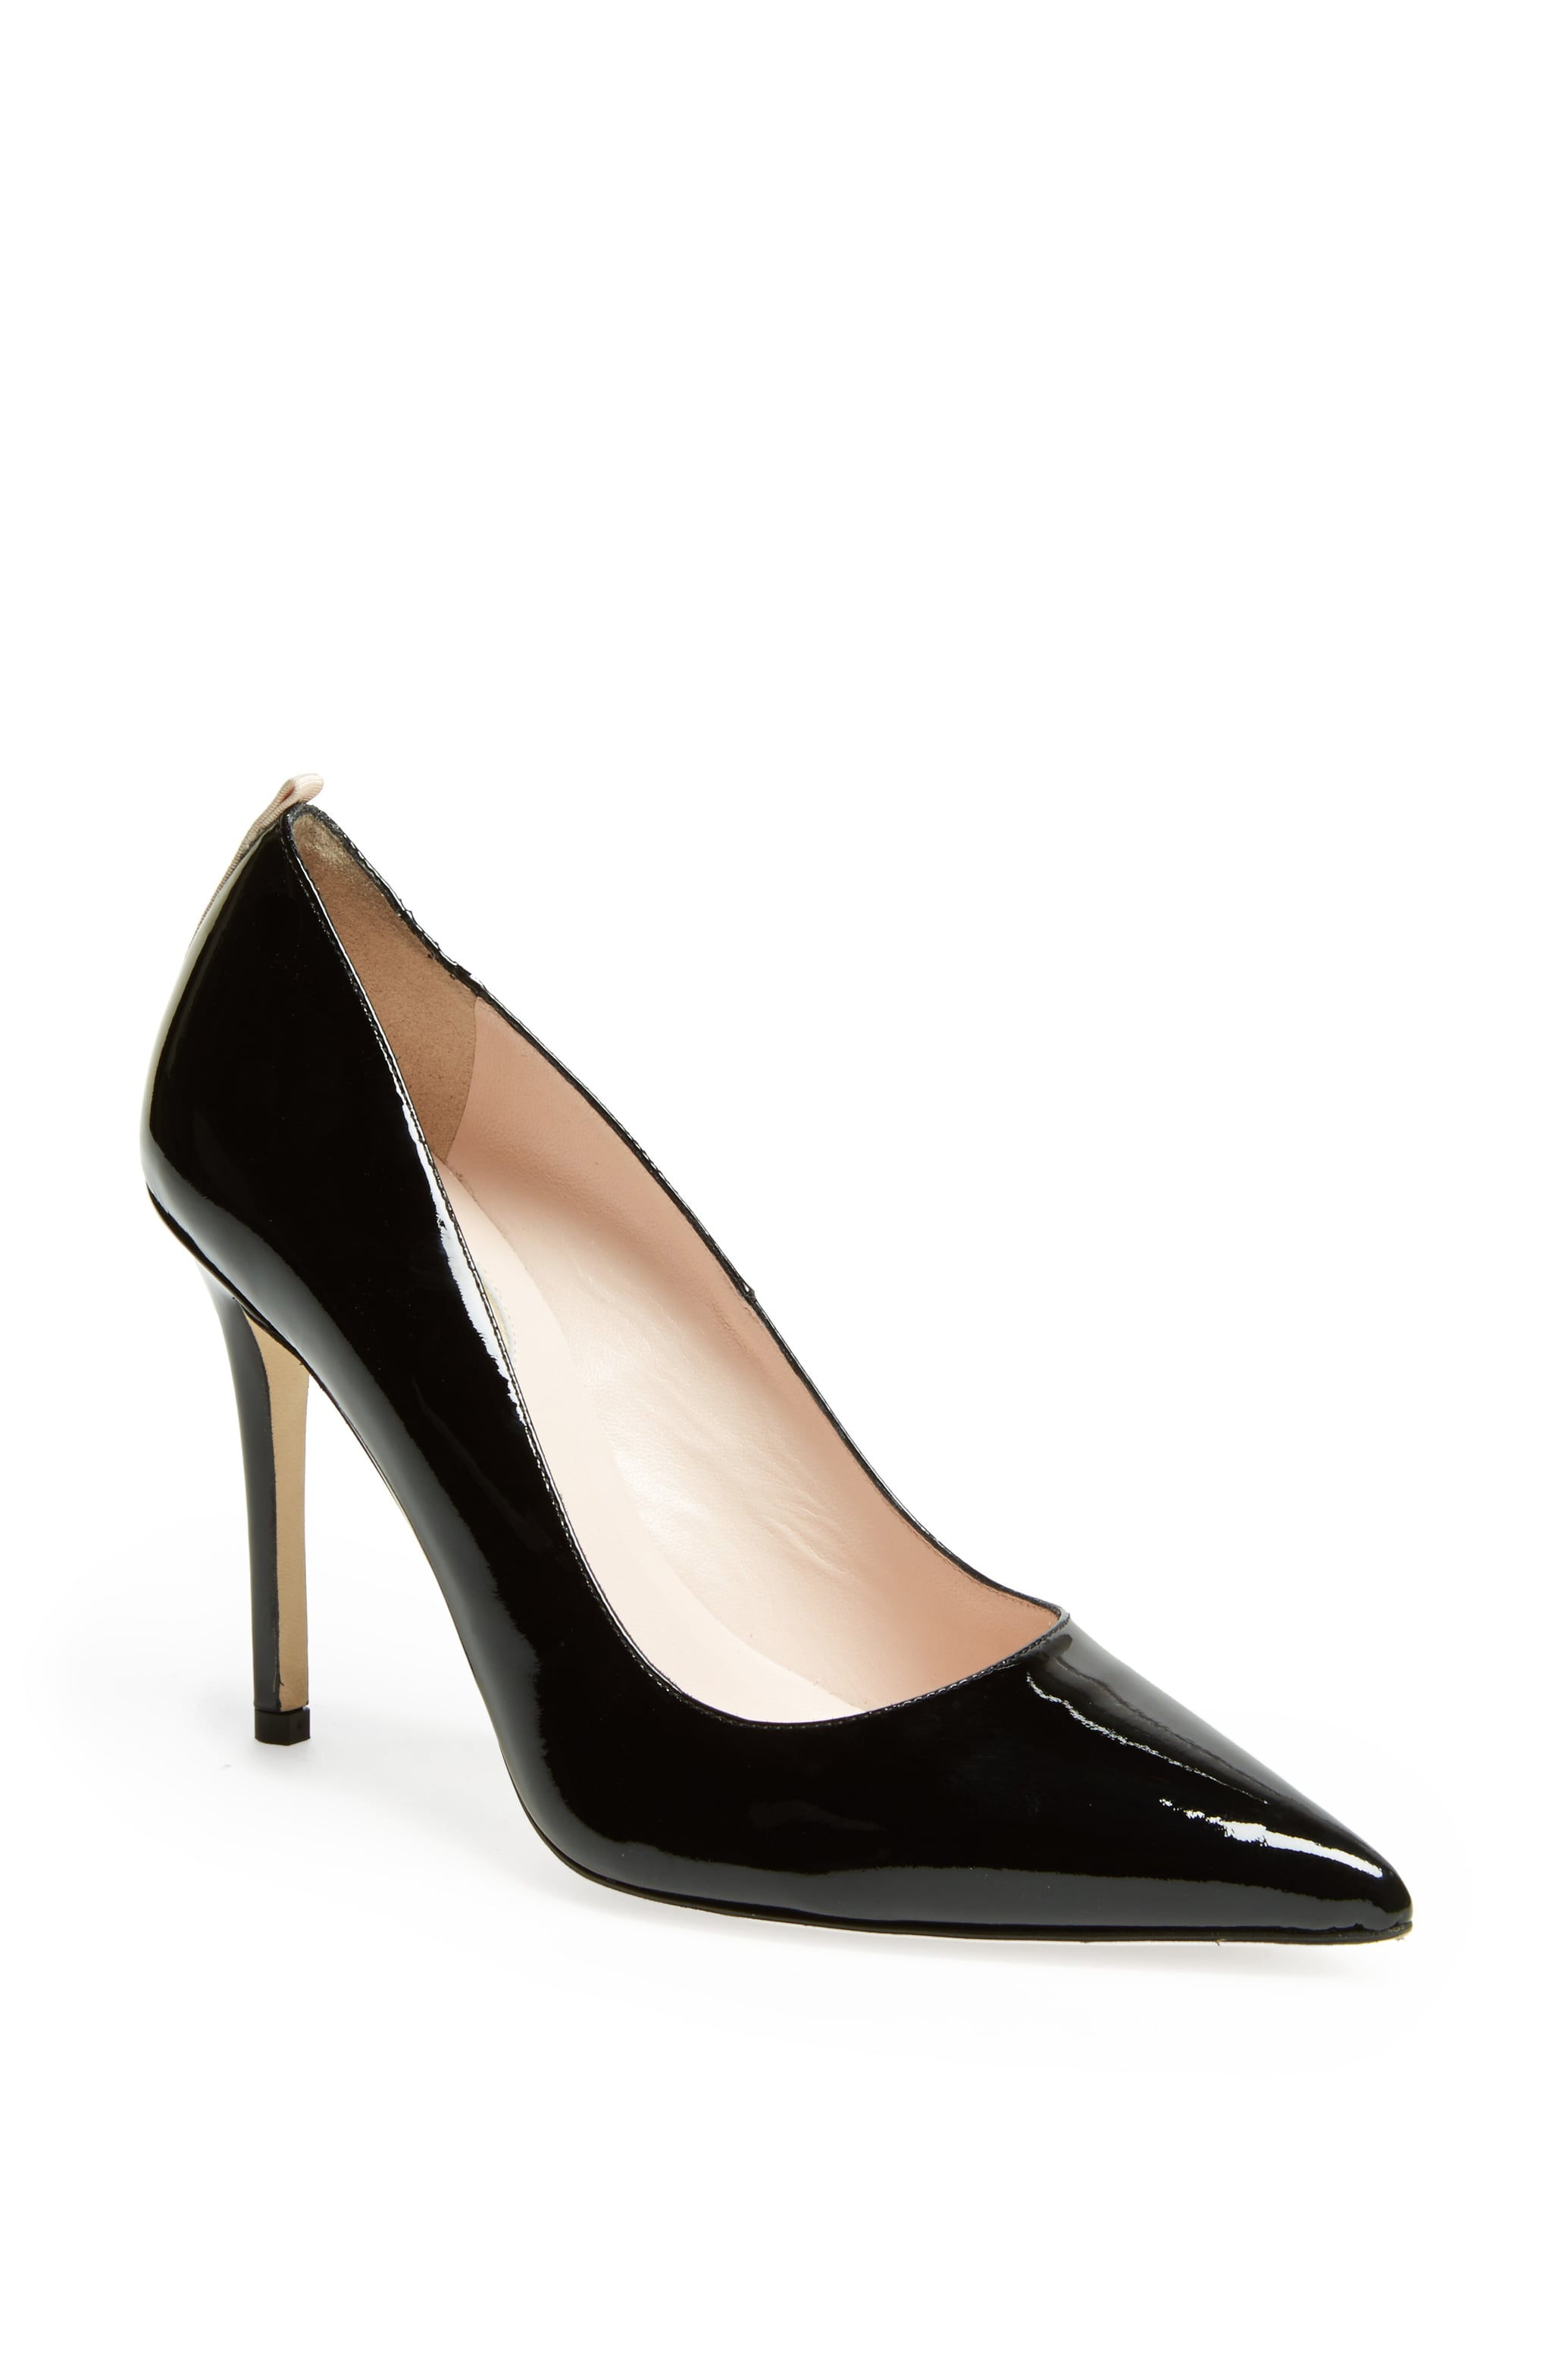 Fawn 70 in Black Patent, $350